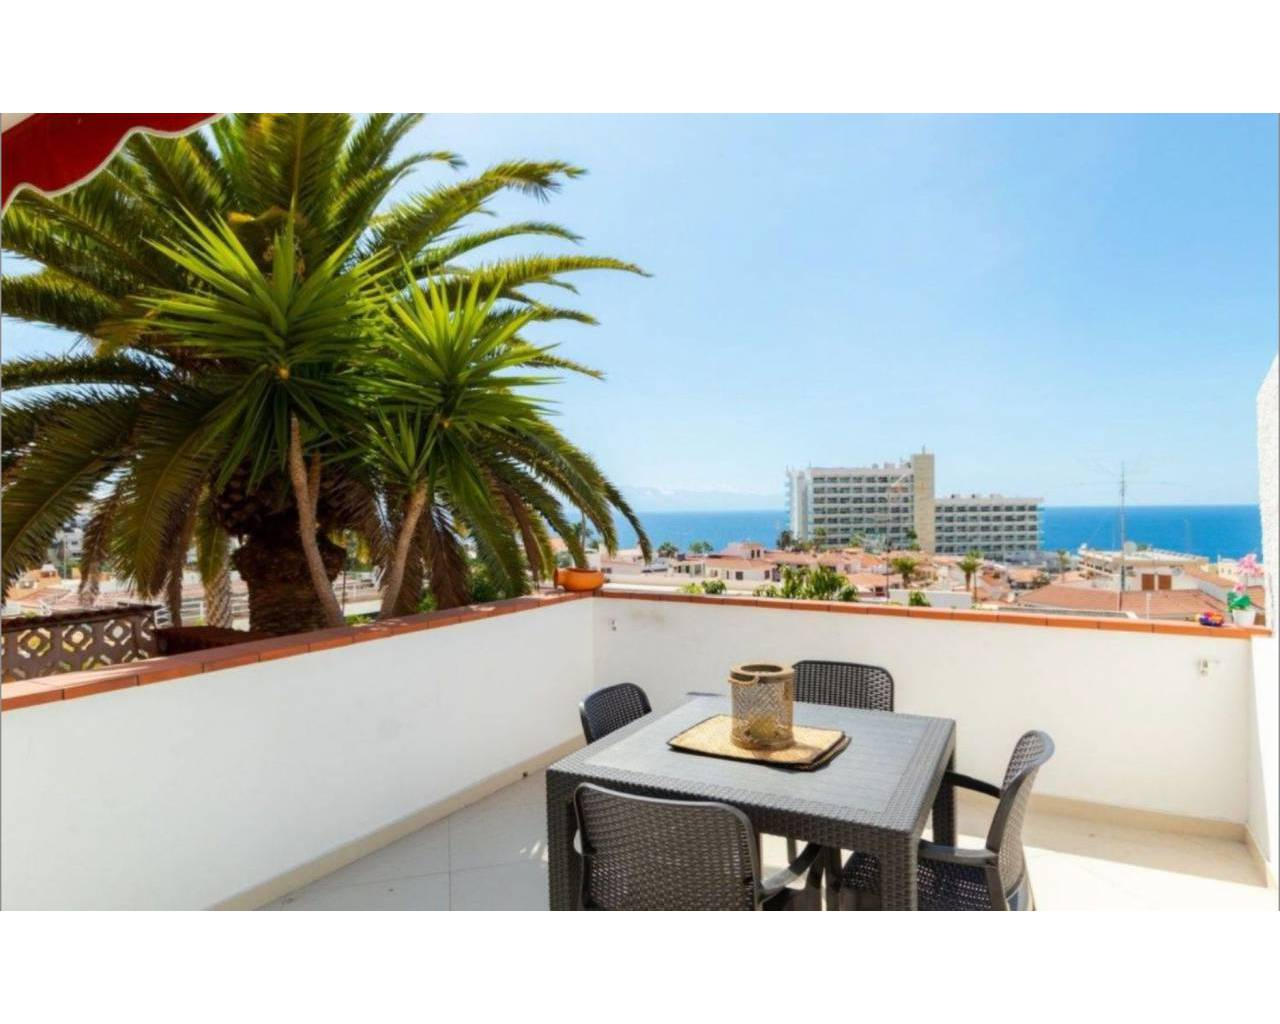 Apartment - Sale - Tenerife - Los Gigantes